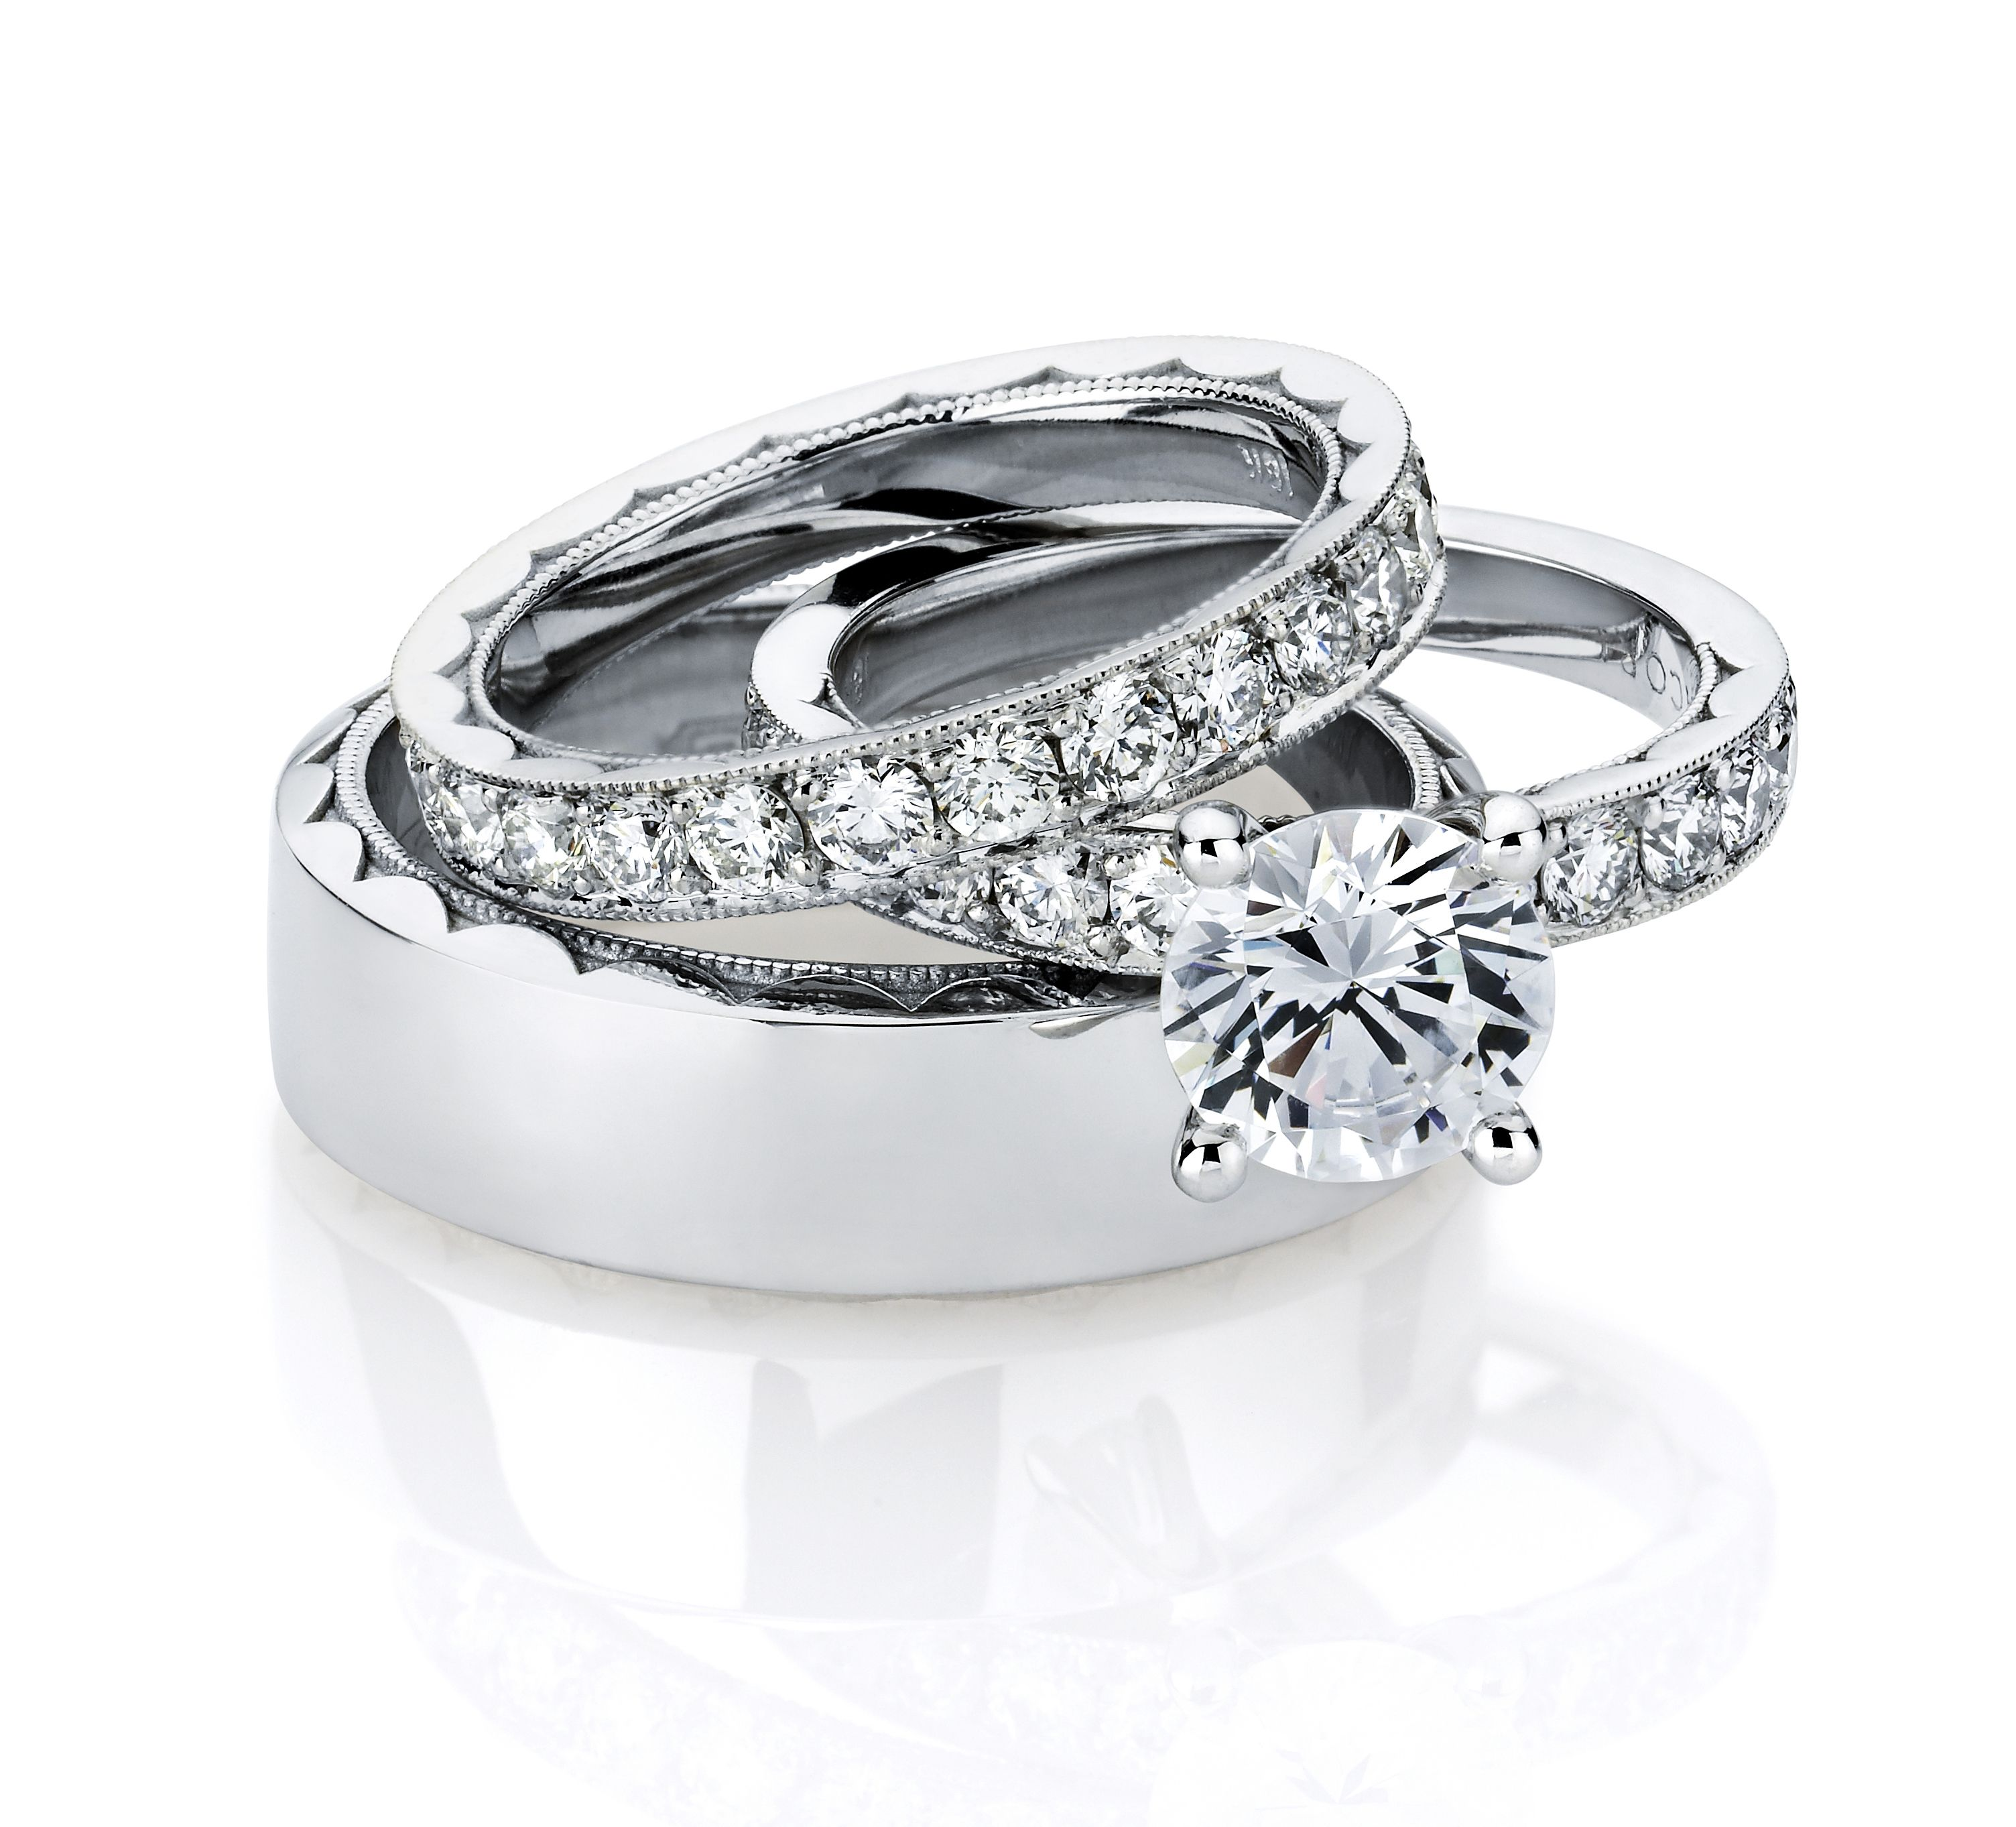 wedding ring set his hers 1000 images download - His And Hers Wedding Rings Cheap